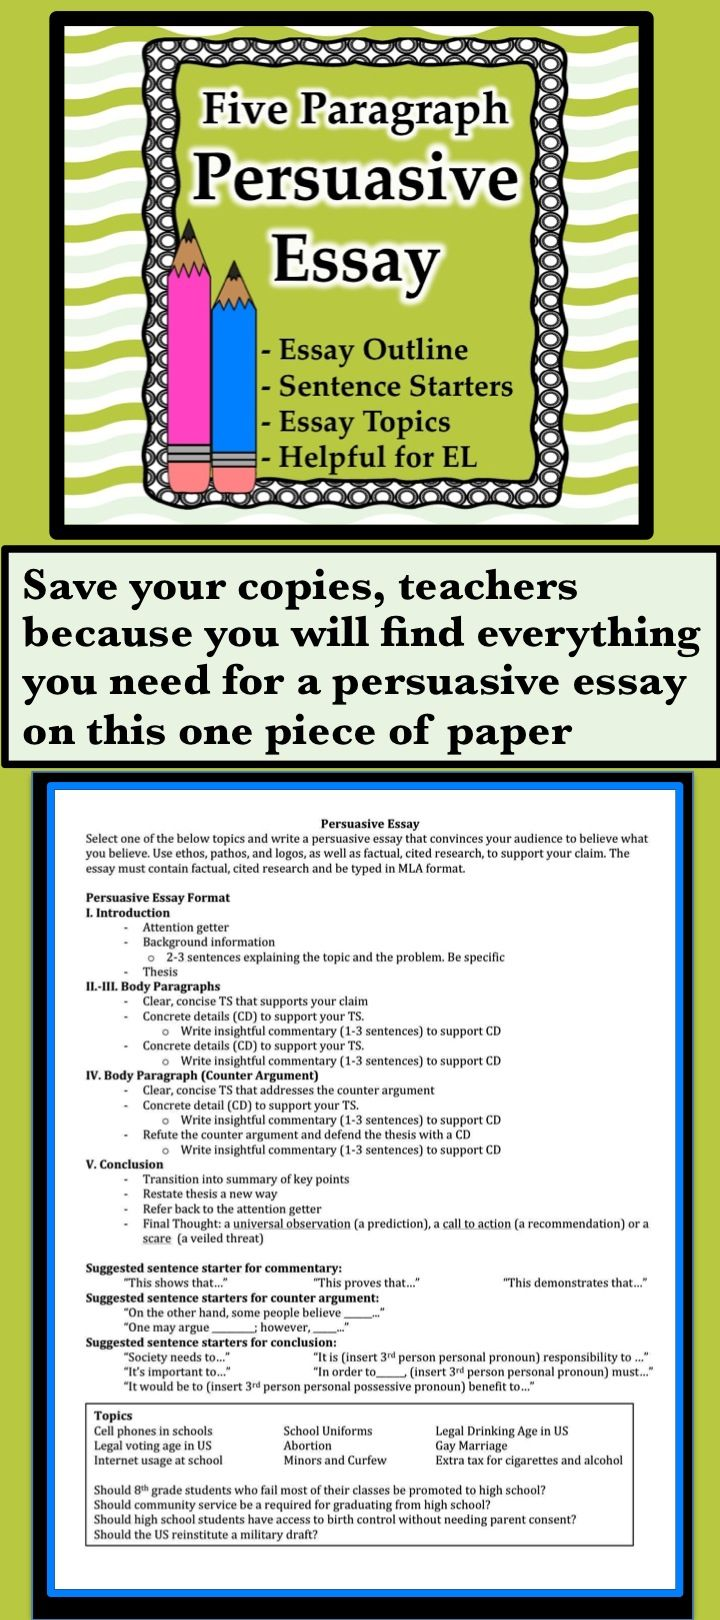 Essential Components of Persuasive Essays